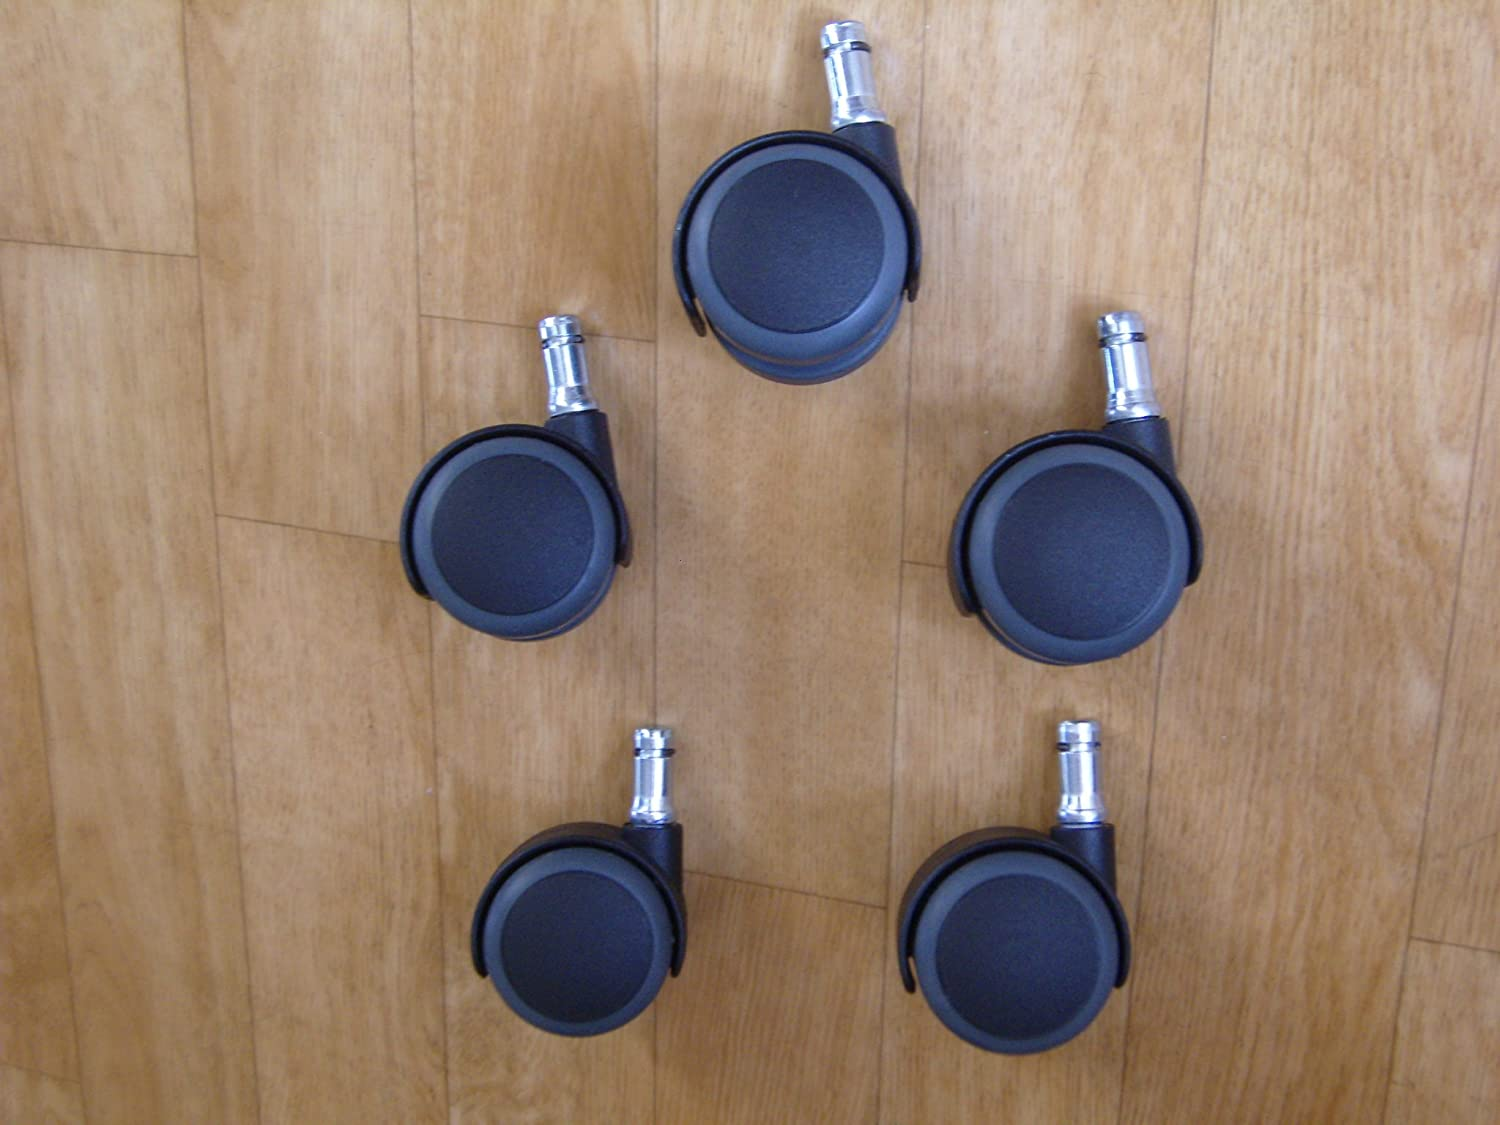 5 x 50mm Soft Wheel Castors with 11mm x 22mm Stems (5016S) Uk manufactured - top quality - not imported rubbish that break easily